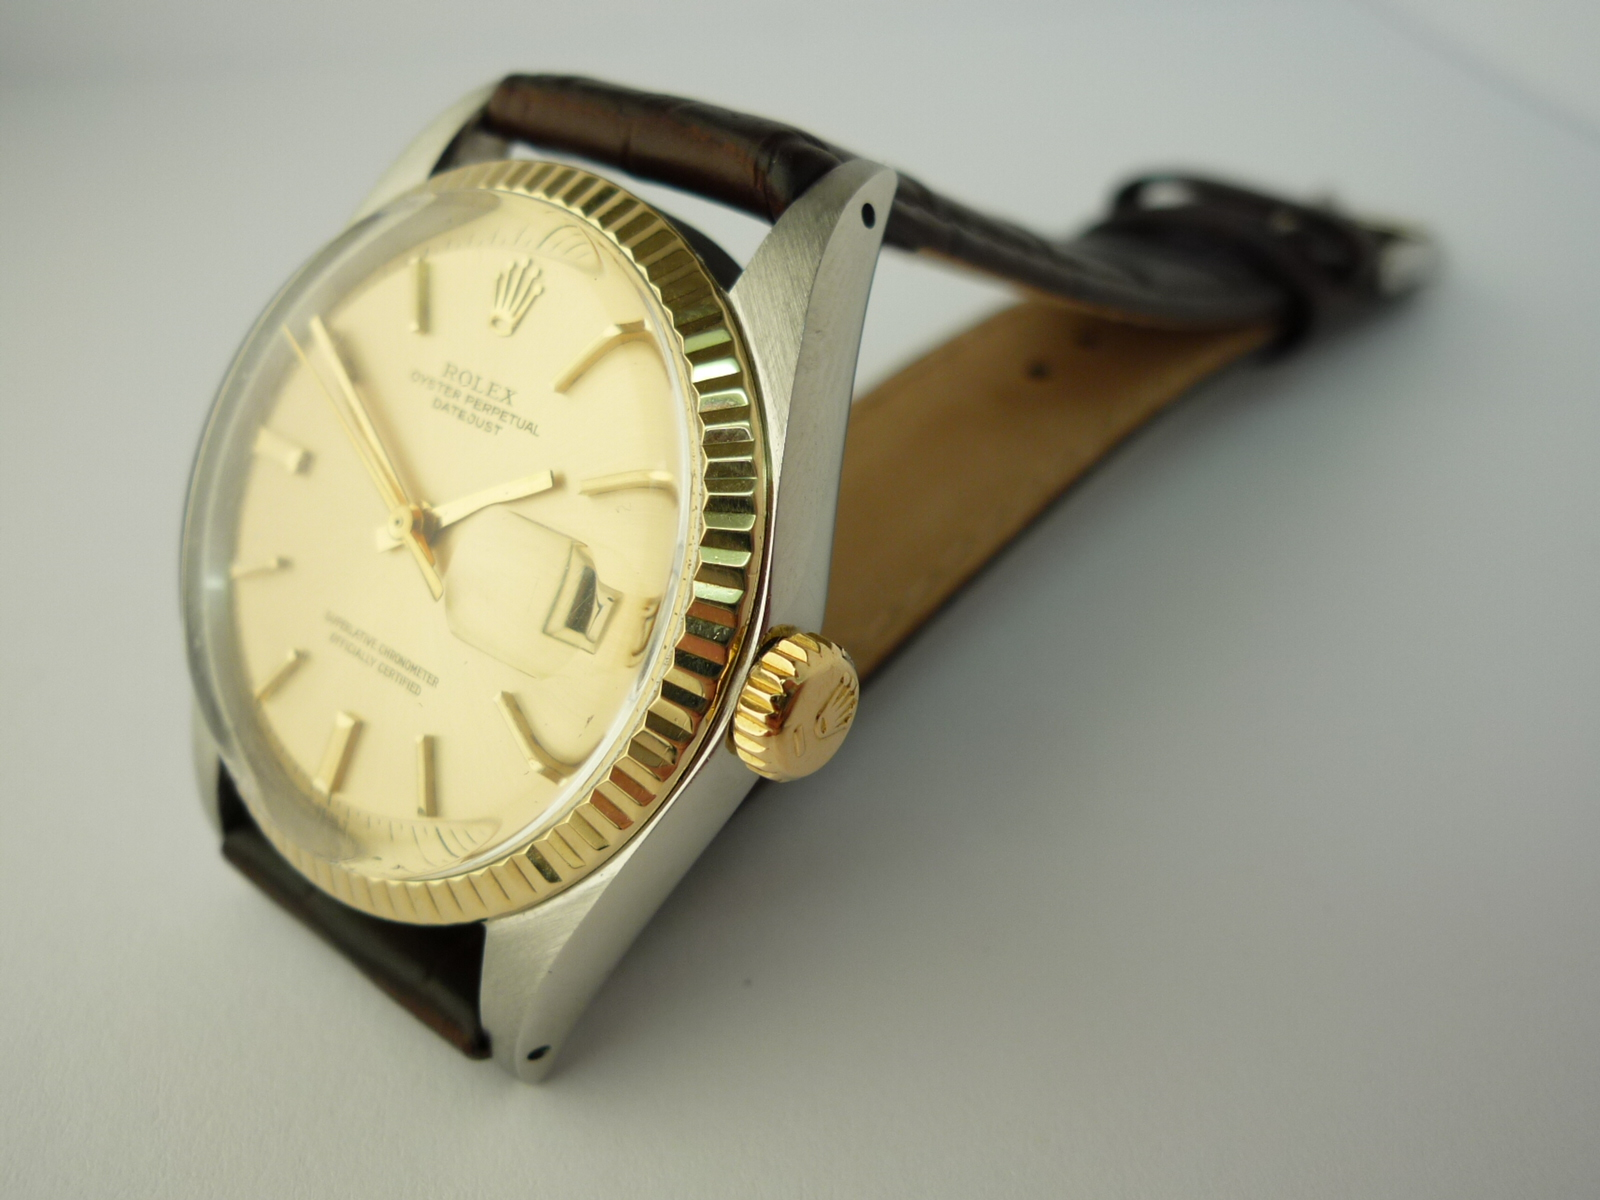 Rolex Oyster Perpetual DateJust watch ref 16013 (1972) + Papers